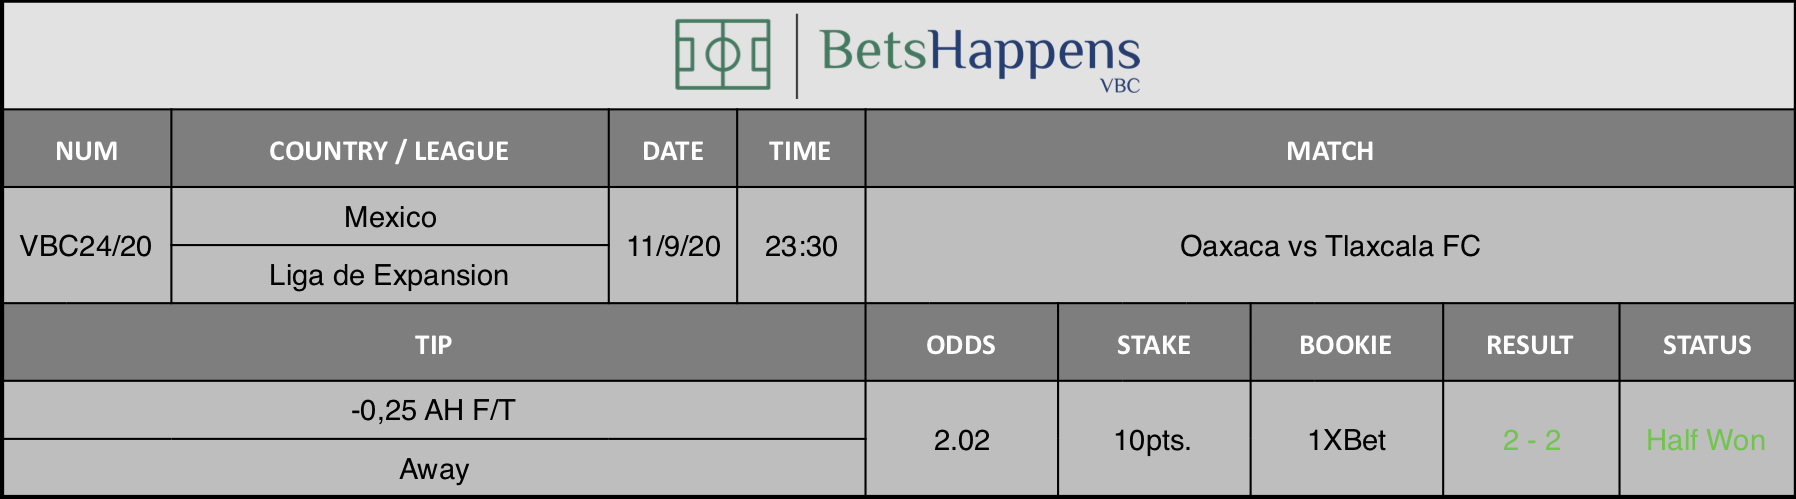 Results of our advice for the Oaxaca vs Tlaxcala FC match in which -0.25 AH F / T Away is recommended.